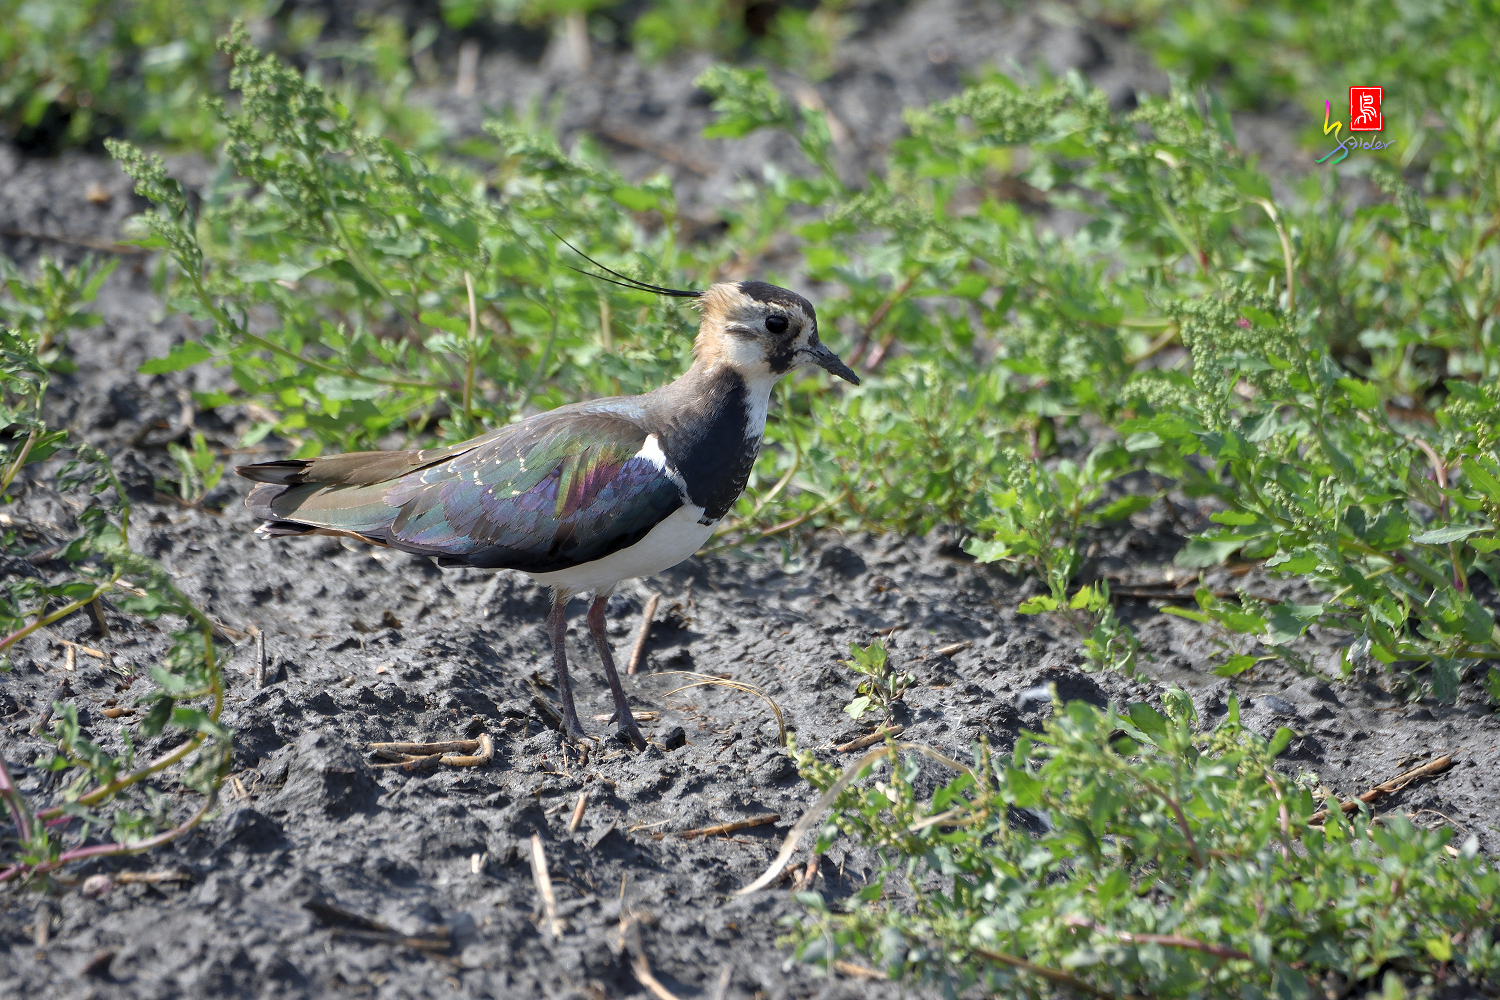 Nprthern_Lapwing_7125